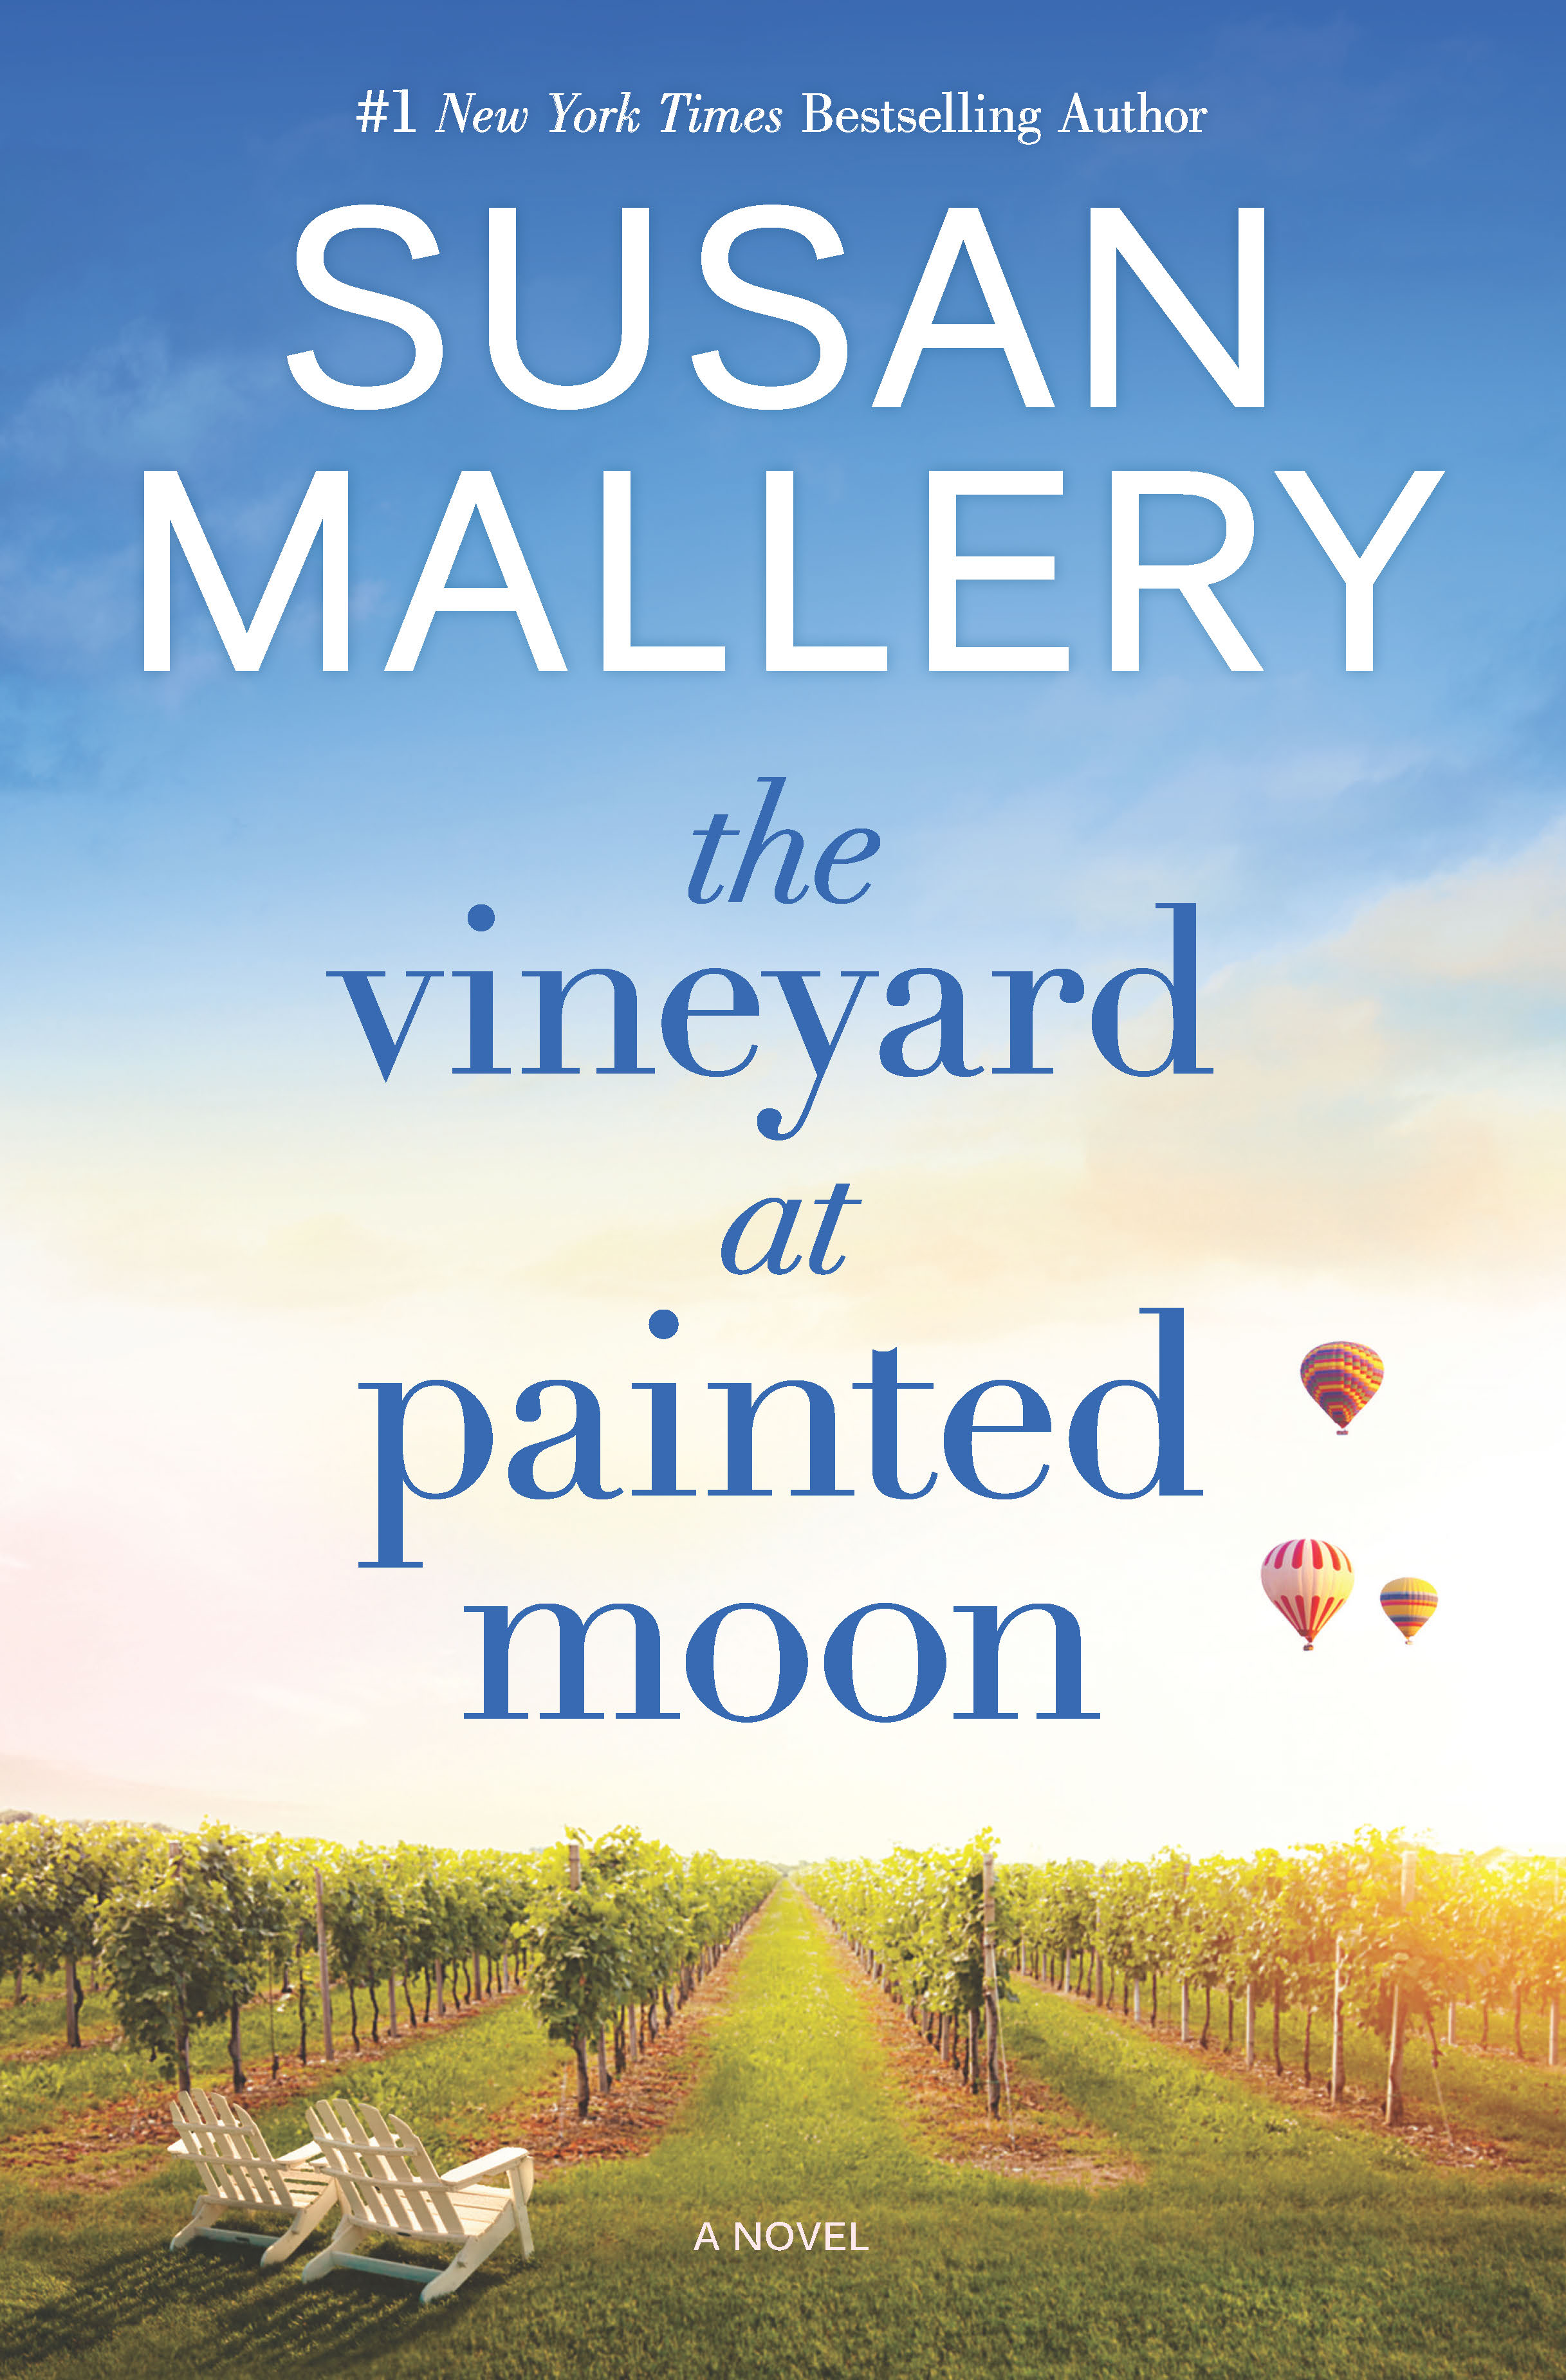 Blog Tour & Review: The Vineyard At Painted Moon by Susan Mallery